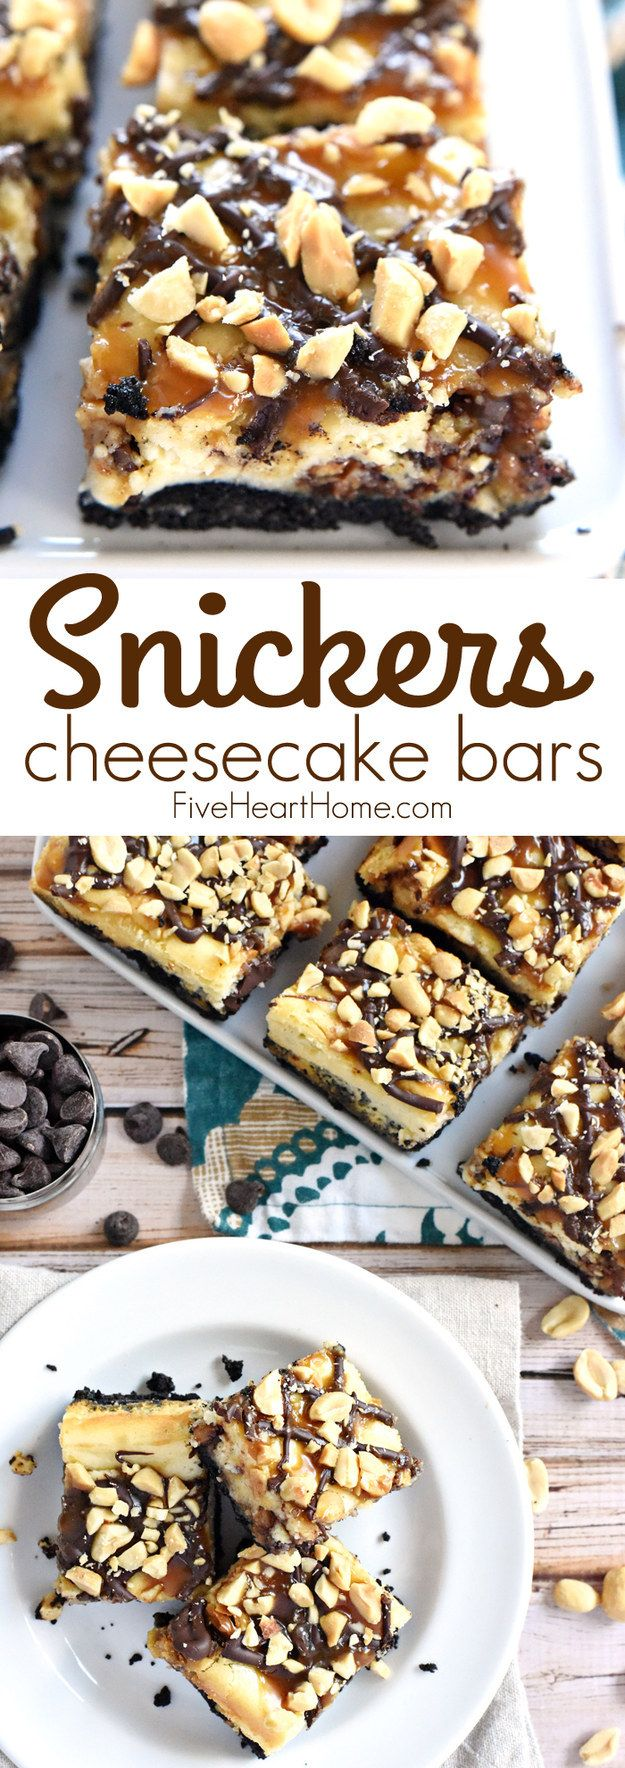 Snickers Cheesecake Bars | 24 Crunchy Desserts You Need In Your Life